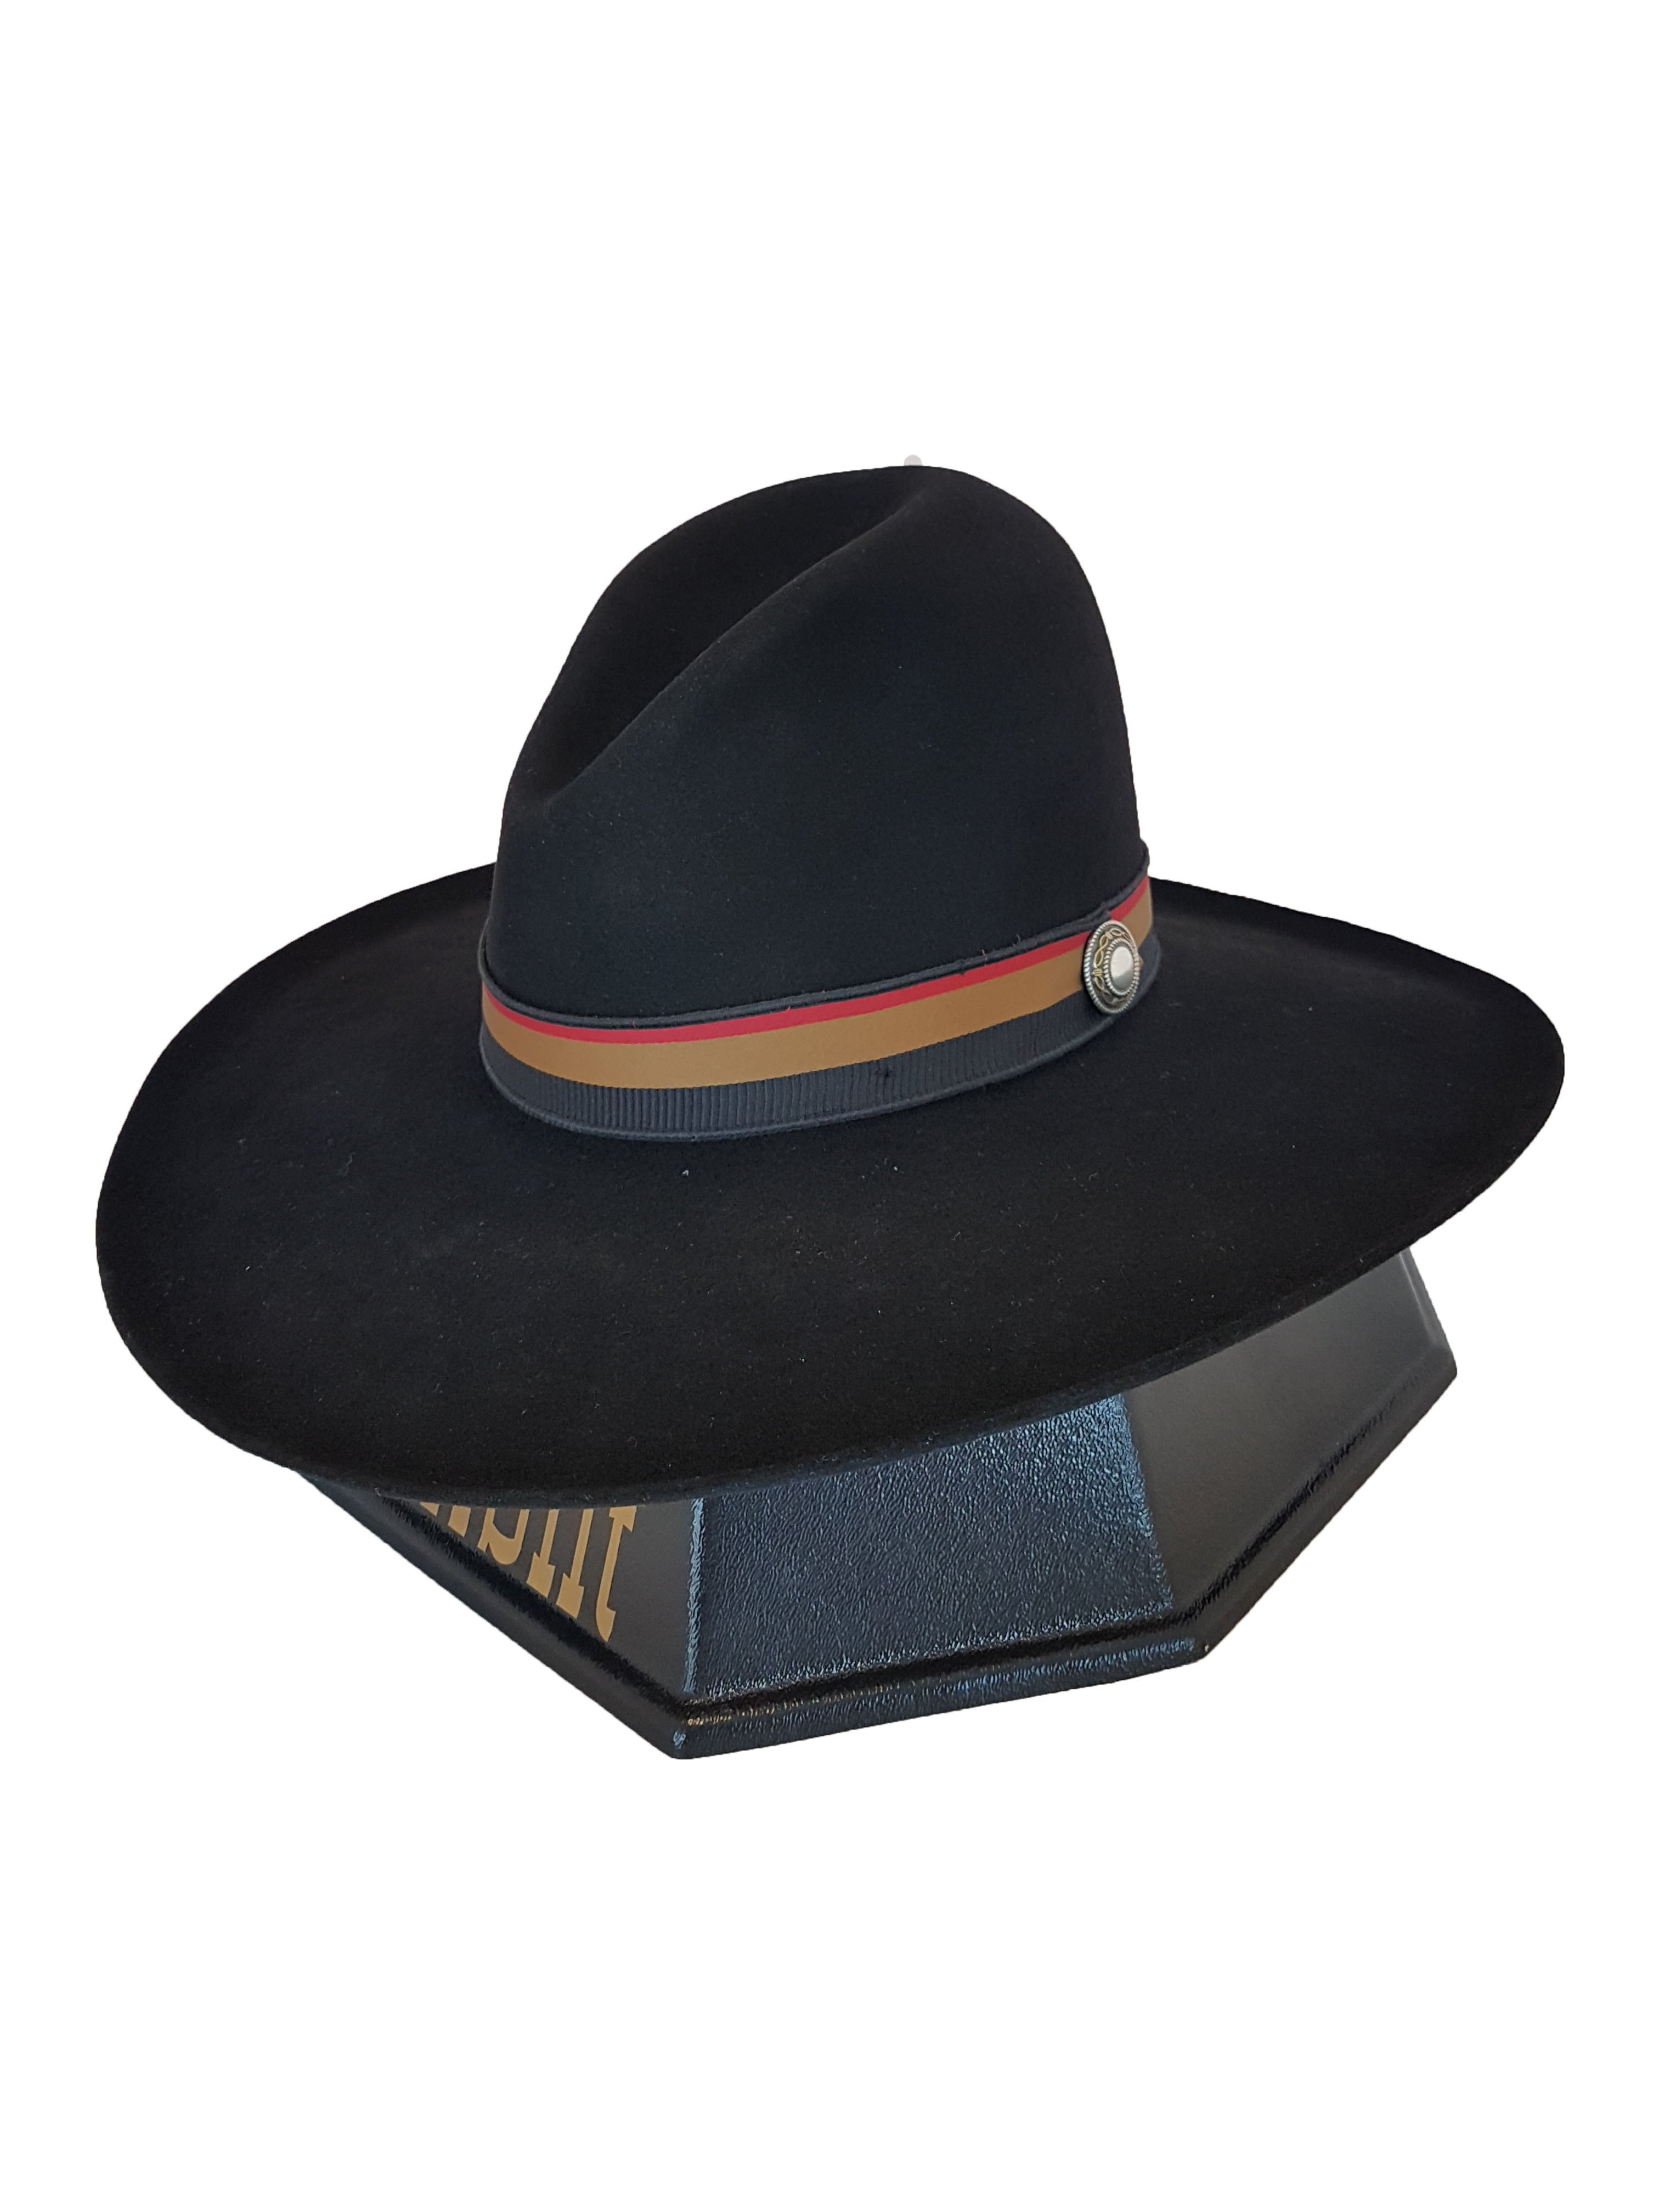 b1b4c79bac1 Shop for a custom made hat! Smithbilt is a Canadian Company.